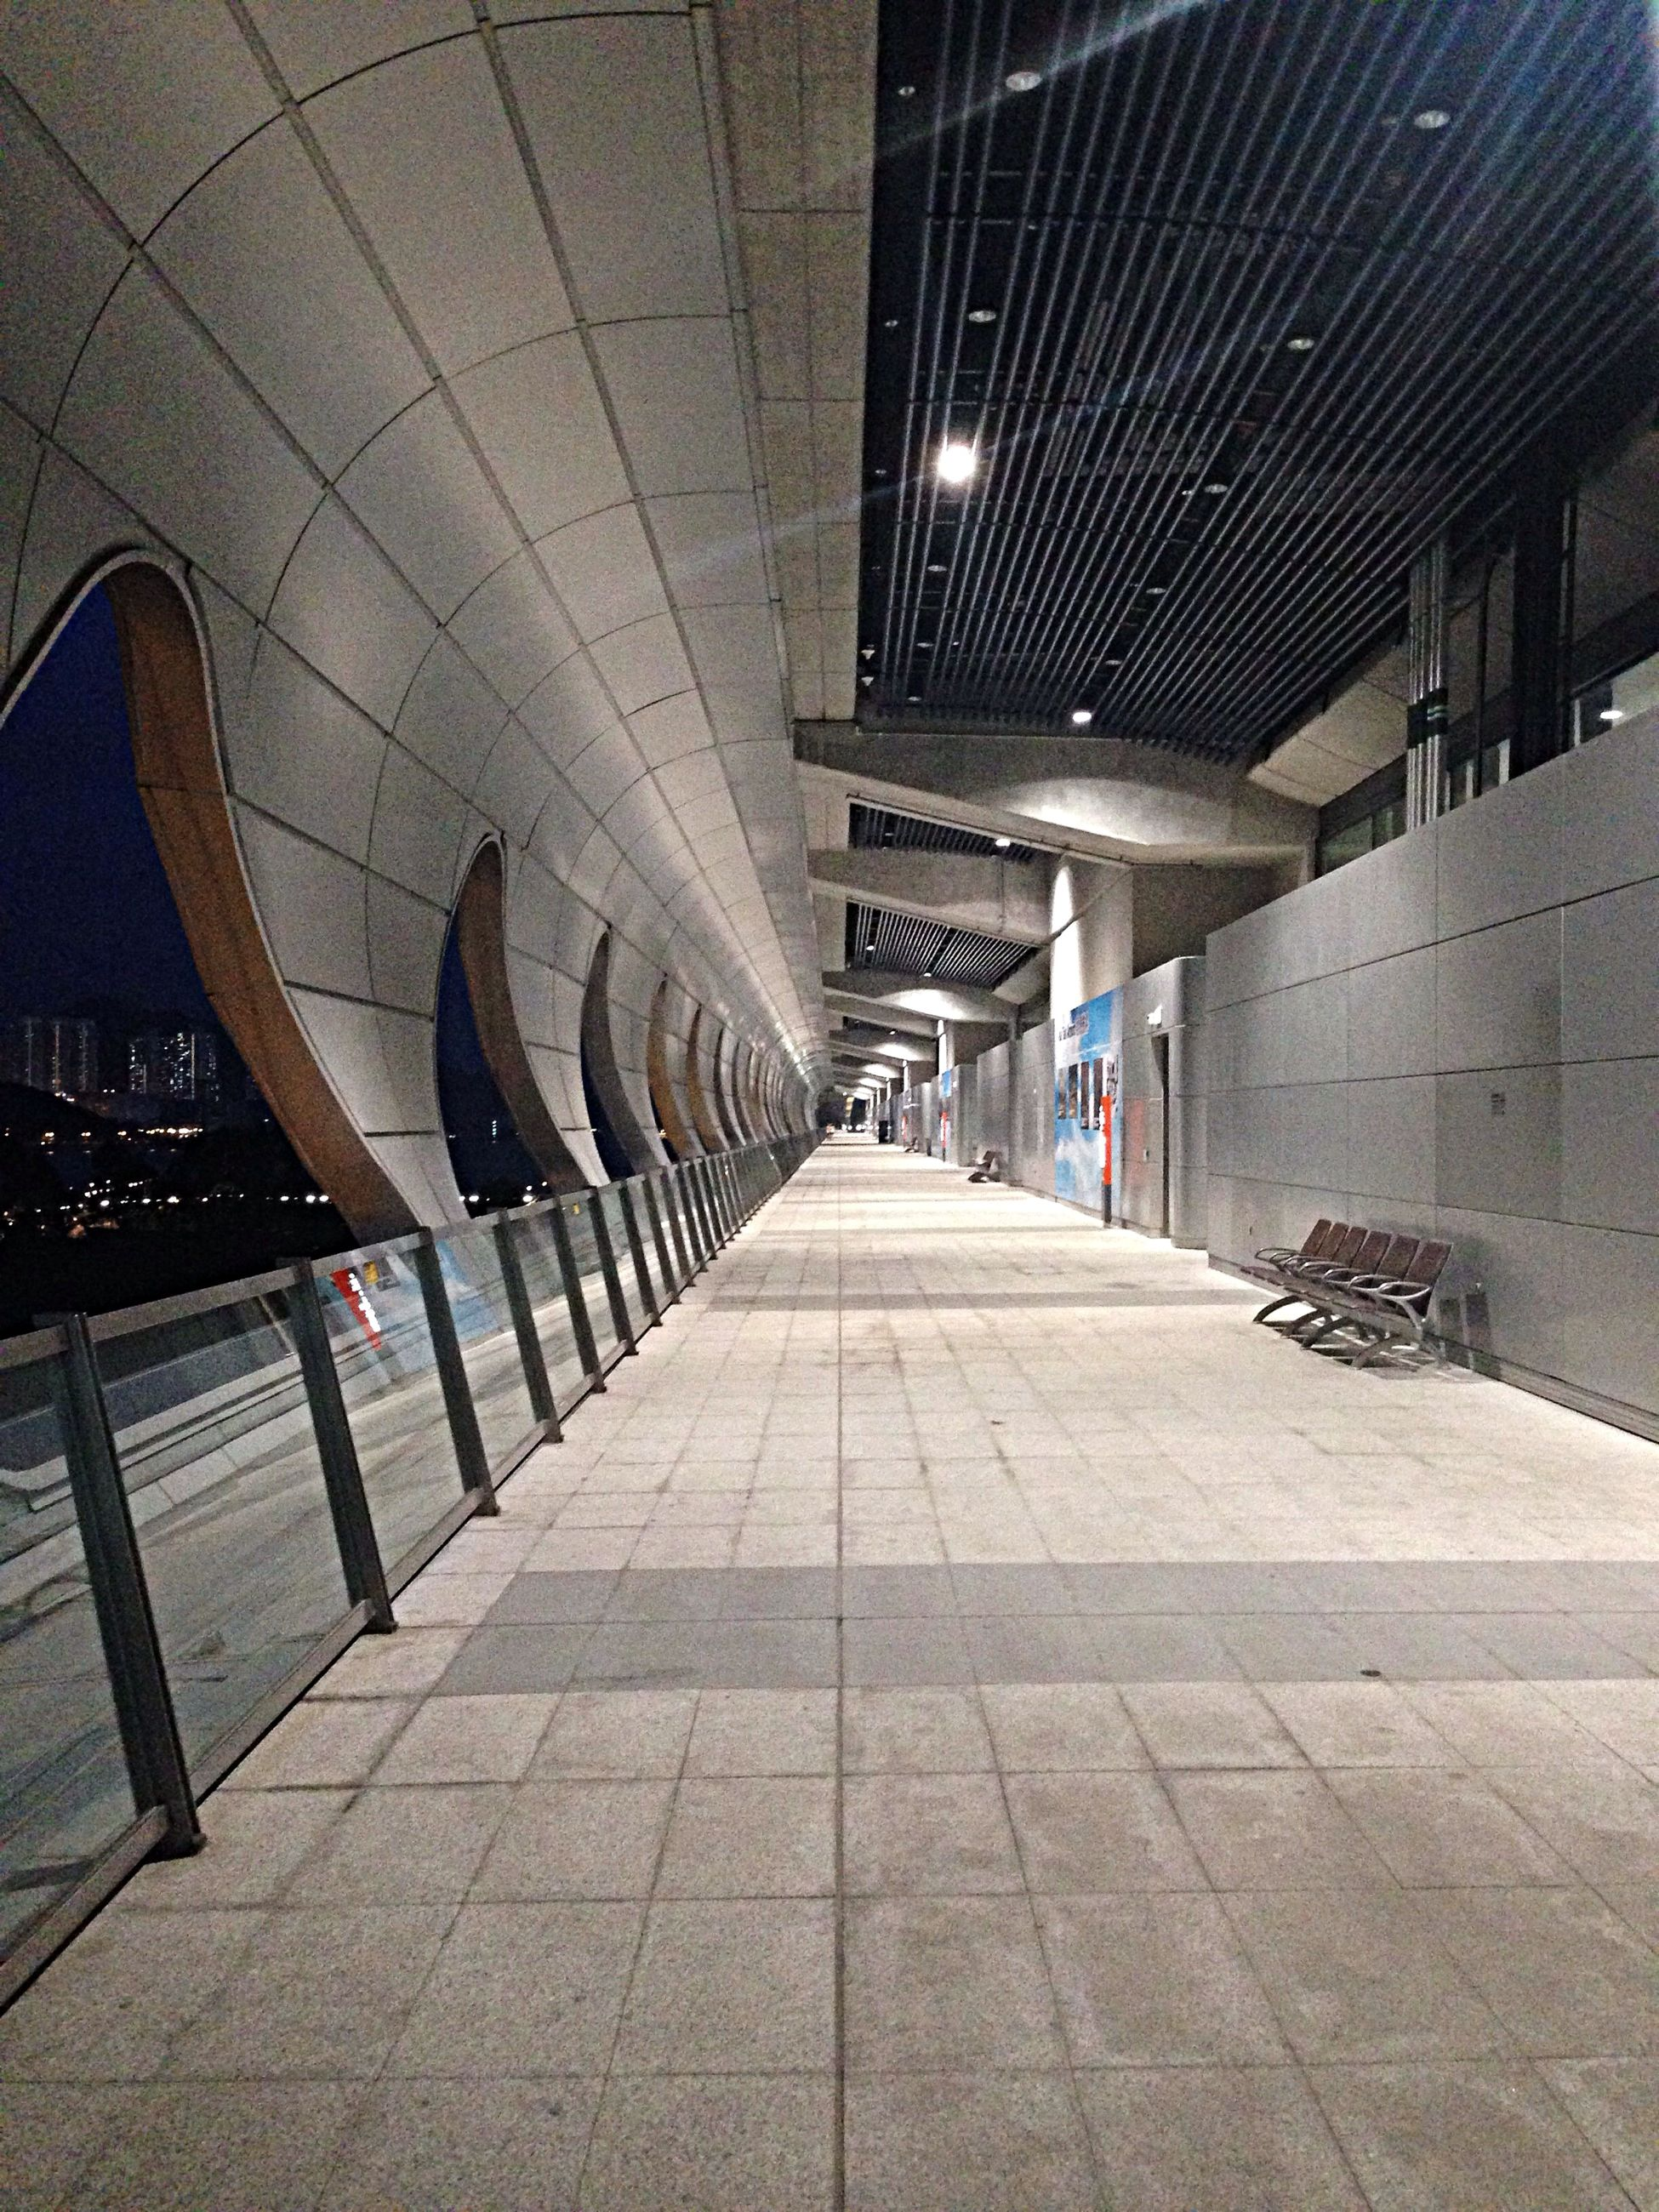 the way forward, architecture, built structure, diminishing perspective, illuminated, building exterior, walking, full length, ceiling, vanishing point, walkway, indoors, men, city, lighting equipment, tiled floor, cobblestone, lifestyles